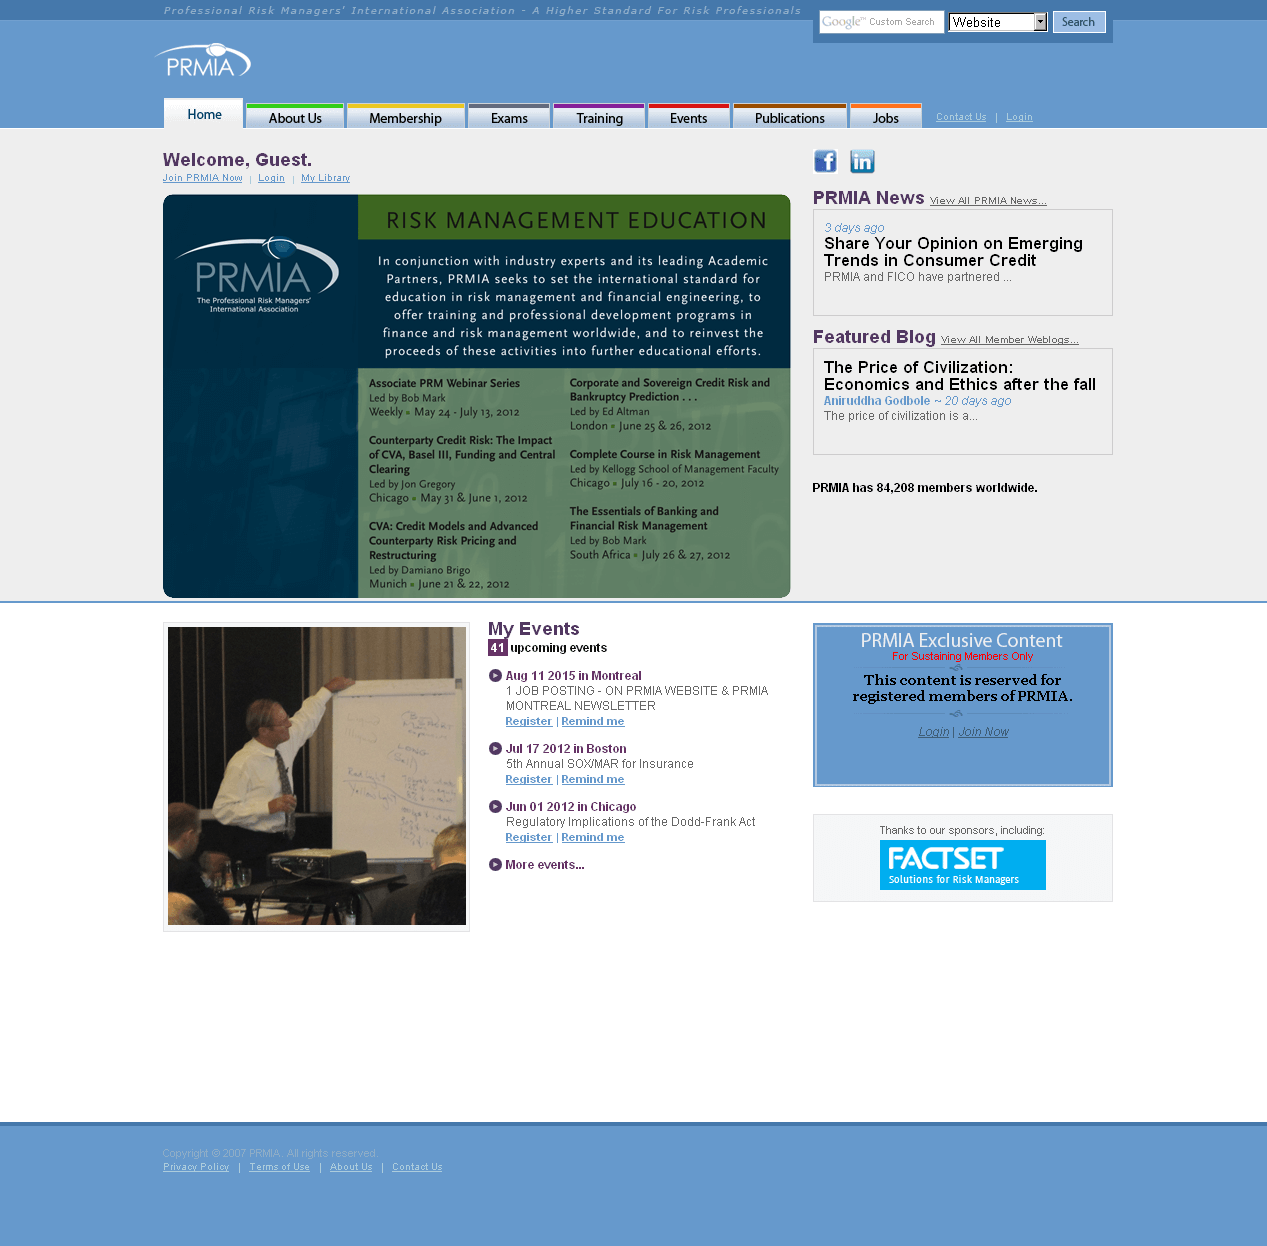 PHP Website for Education 'PRMIA' – Risk Management Education